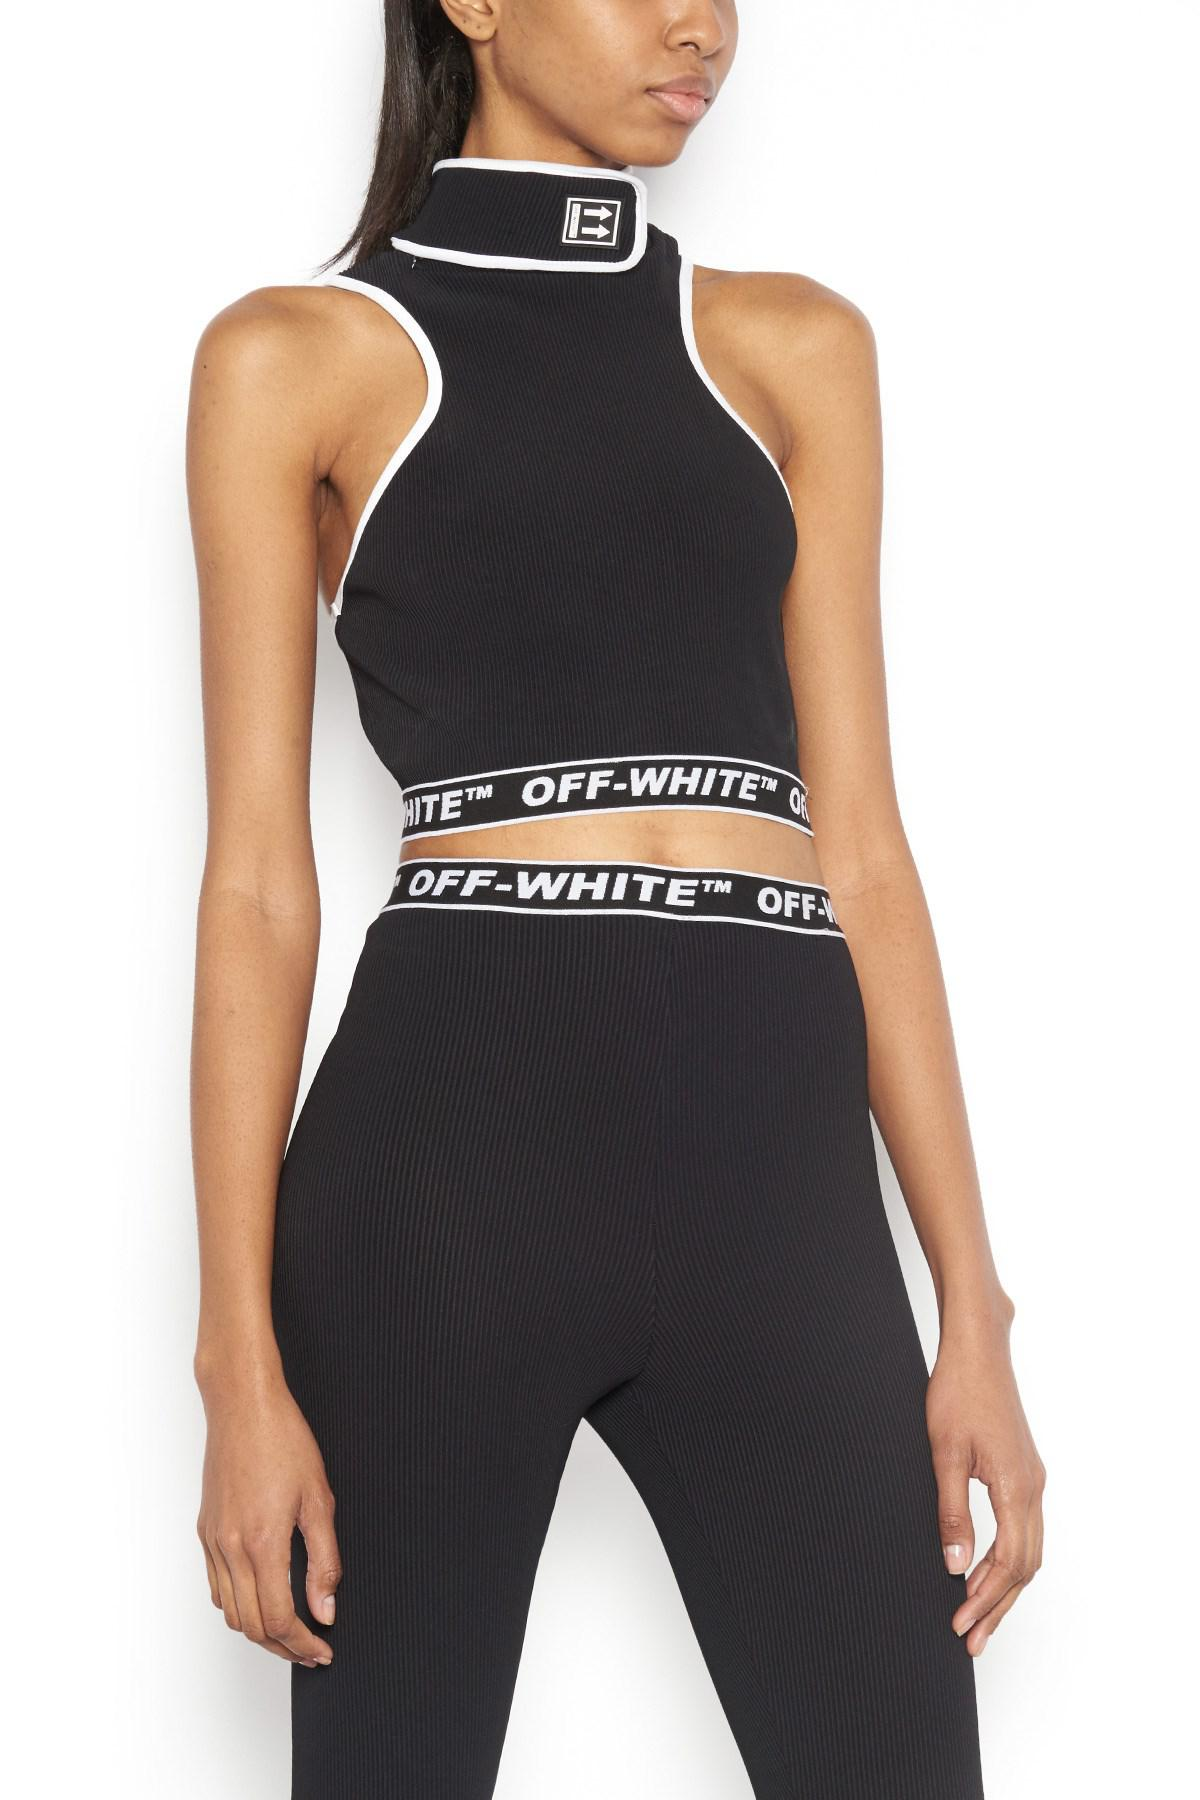 d0218fba2e3 Off-White c/o Virgil Abloh 'cannette' Crop Top in Black - Lyst